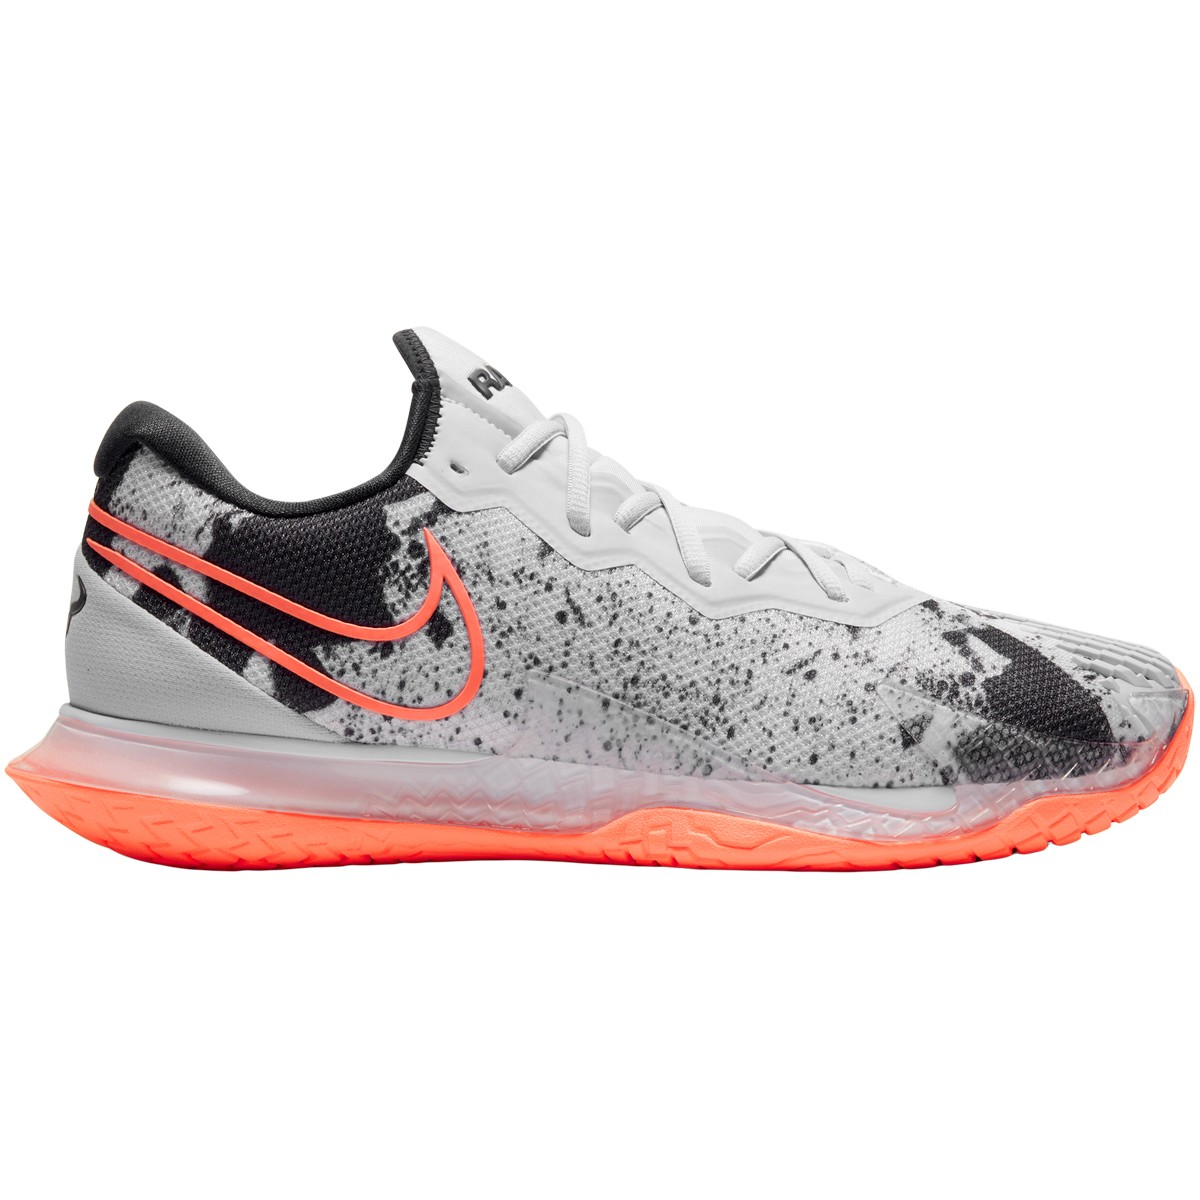 CHAUSSURES NIKE AIR ZOOM VAPOR CAGE 4 NADAL INDIAN WELLS/MIAMI LIMITED TOUTES SURFACES